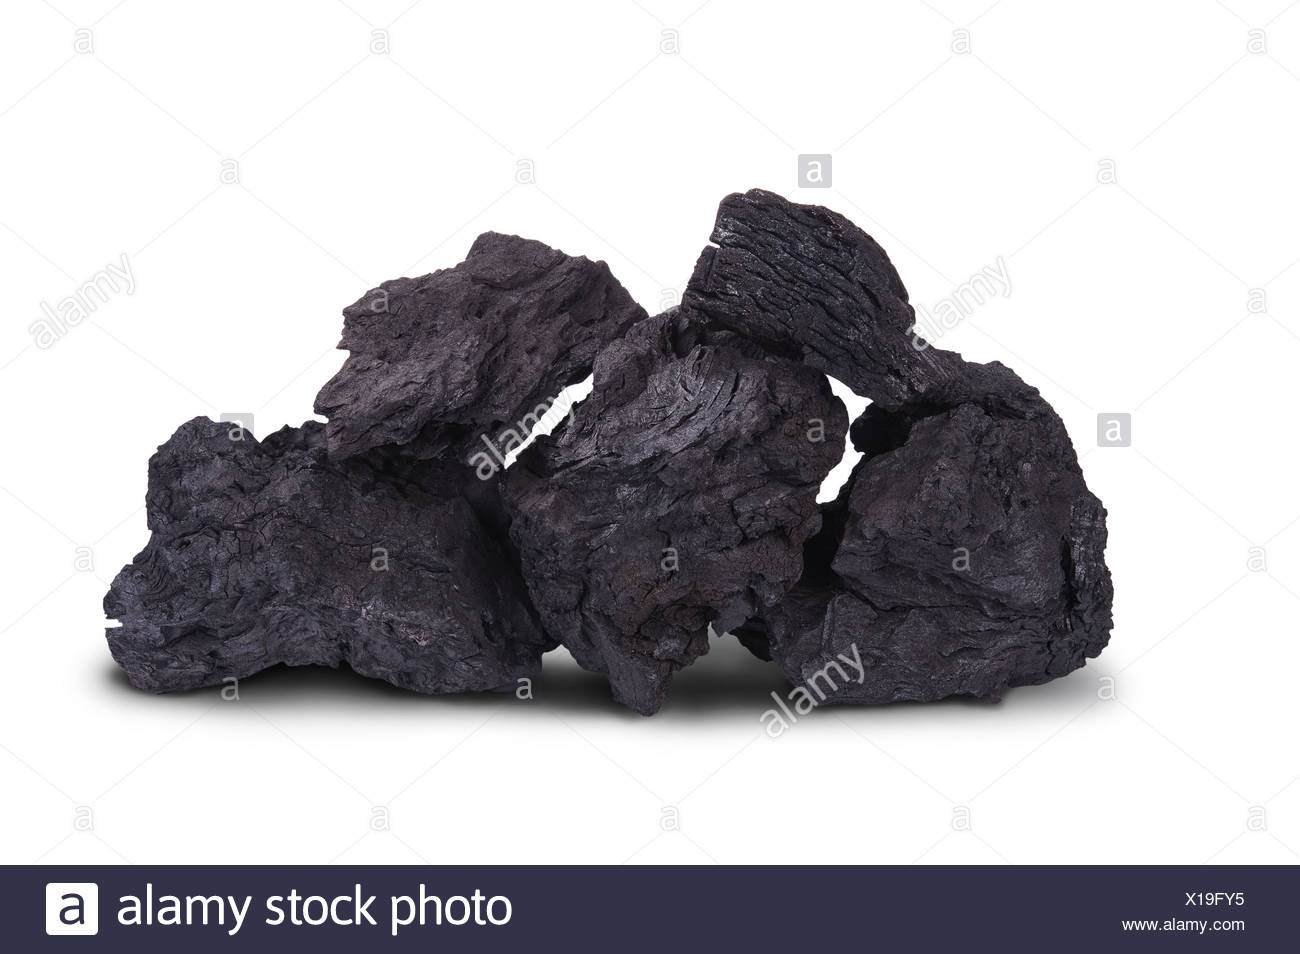 black charcoal - Stock Image